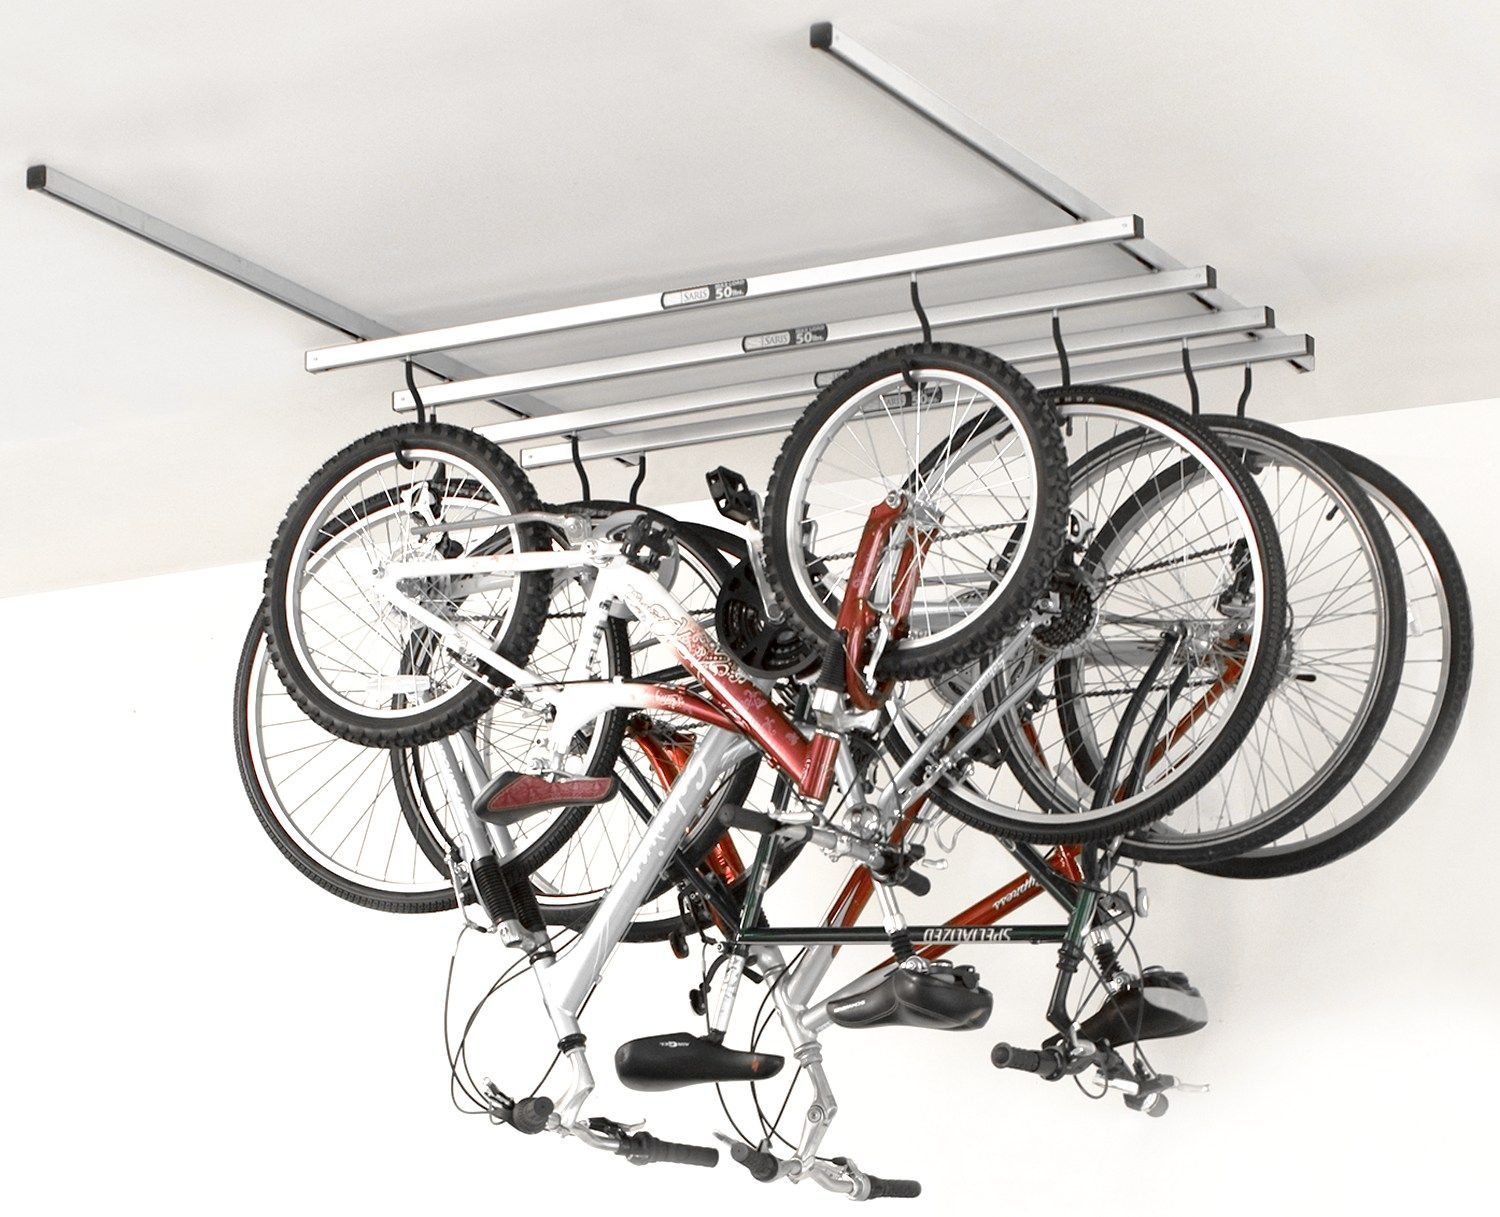 Bike Rack For The Garage Ceiling Bike Rack Rail Garage Bikes Pinterest Bike Storage